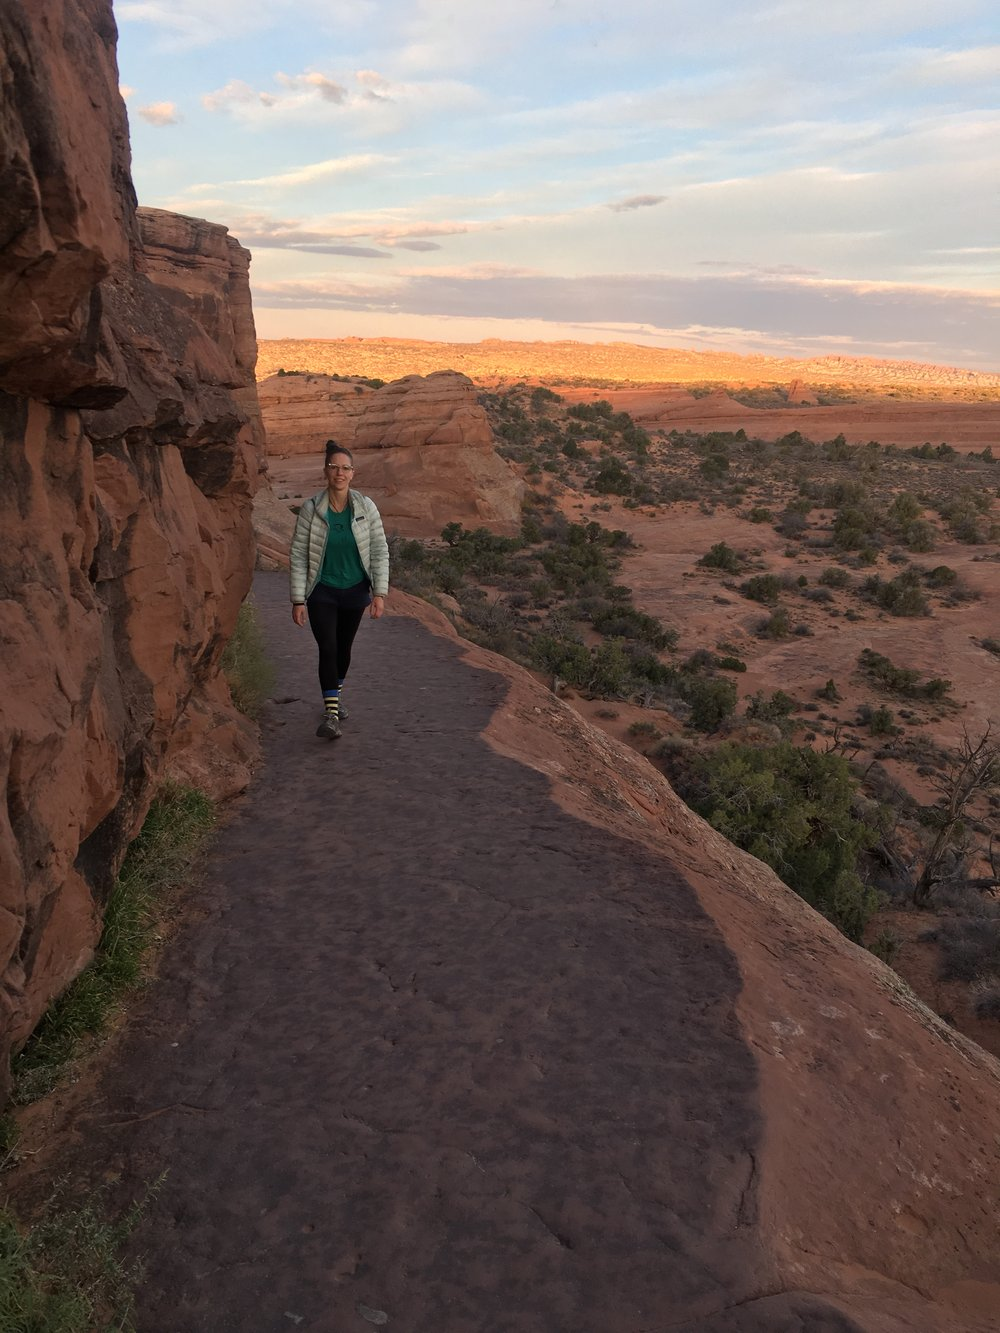 Zoe in Moab, UT. Sunrise hike to Delicate Arch